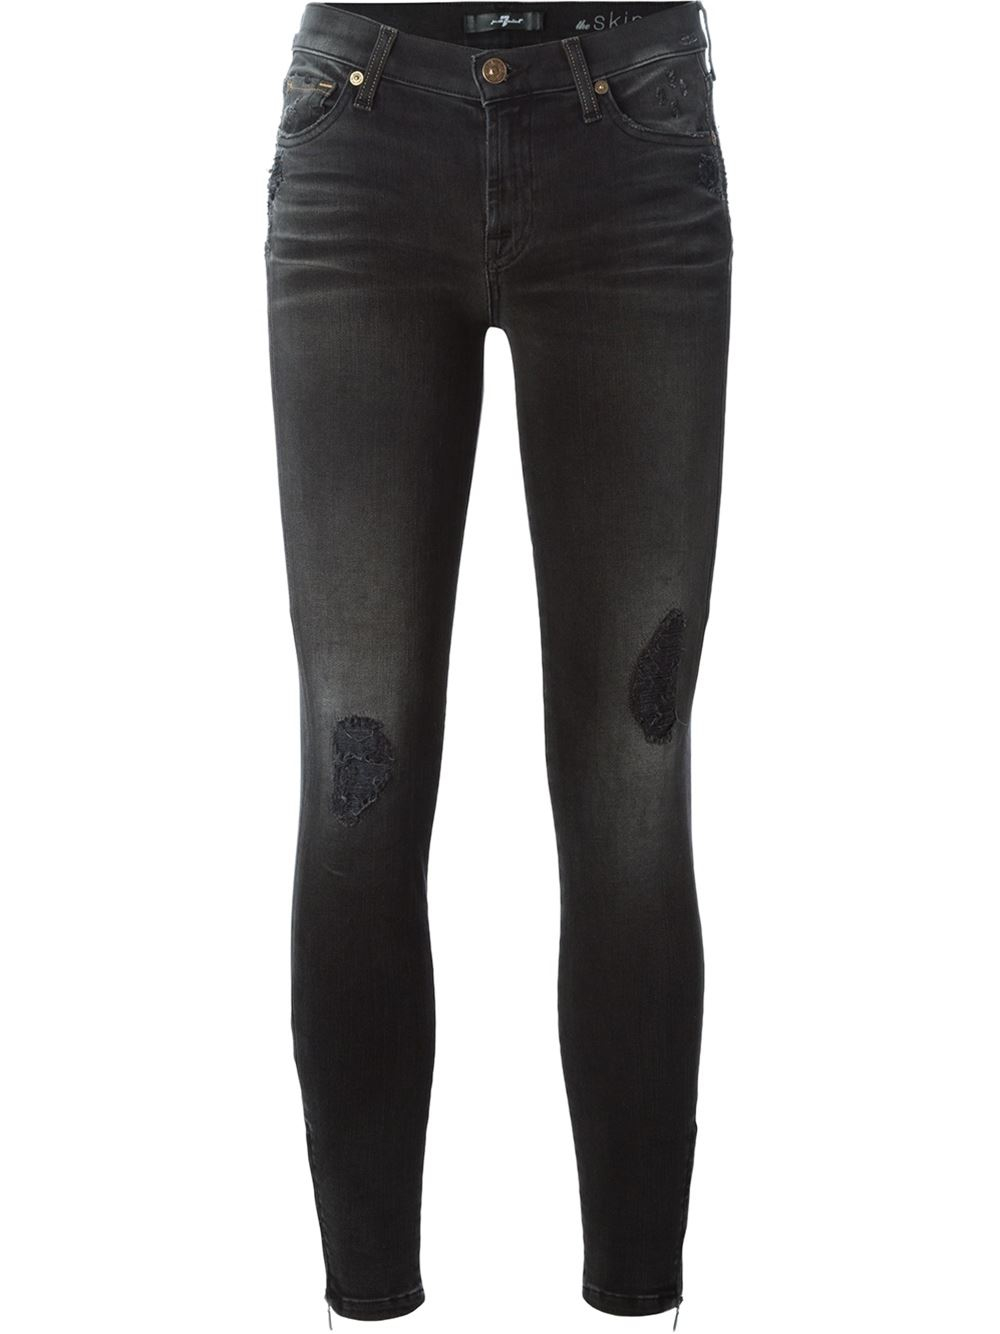 FREE SHIPPING AVAILABLE! Shop 0549sahibi.tk and save on Black Jeans.